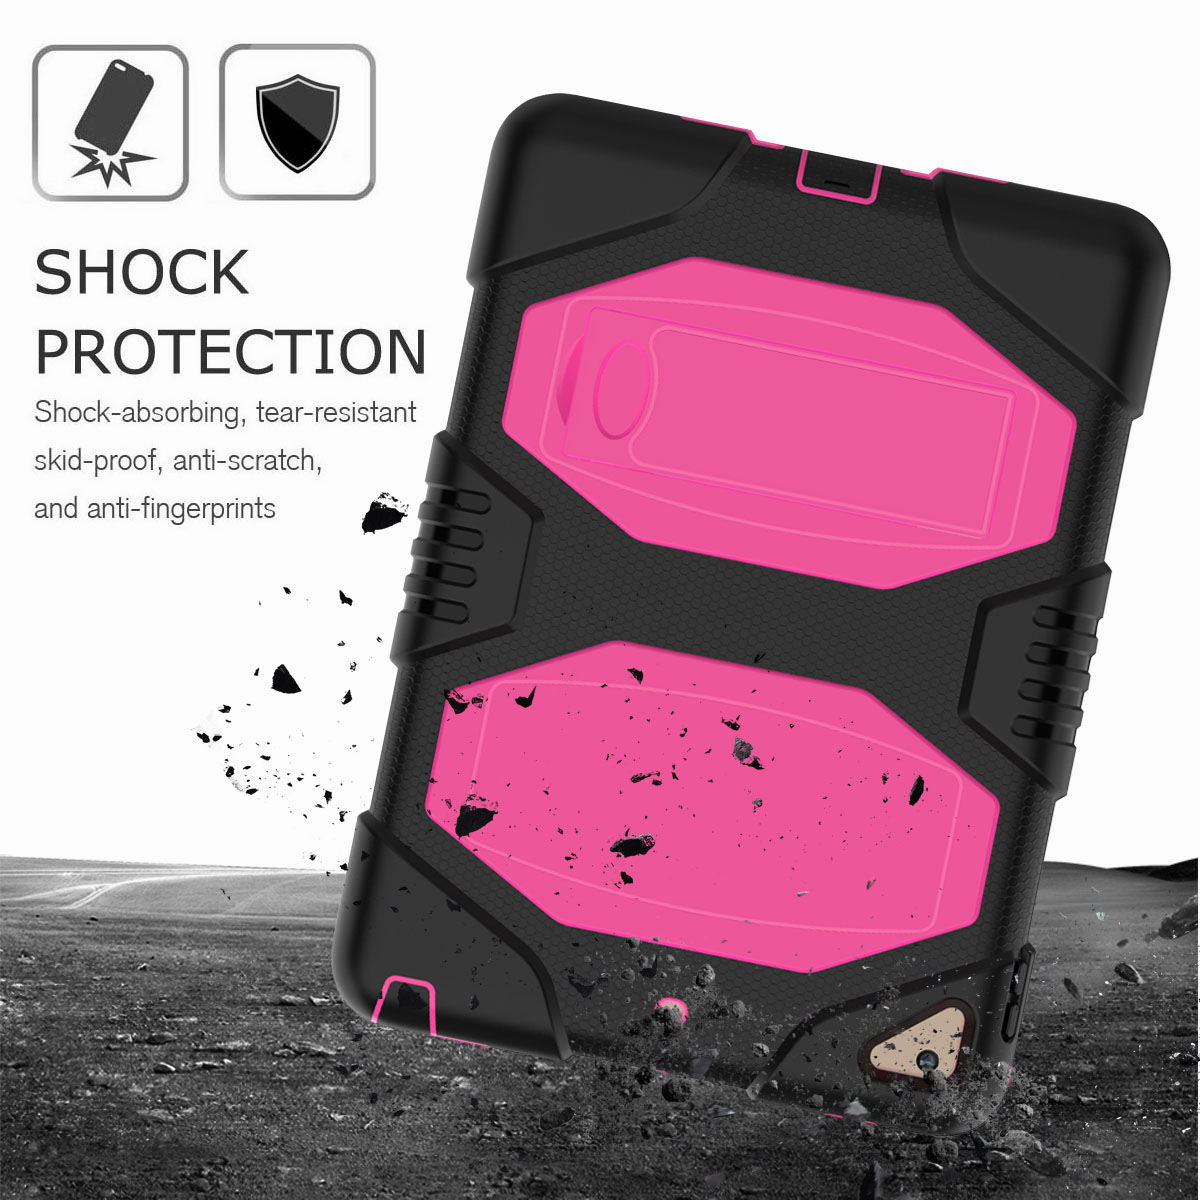 Hybrid-Rubber-Heavy-Duty-Shockproof-Case-Cover-For-iPad-9-7-6th-Generation-2018 thumbnail 36